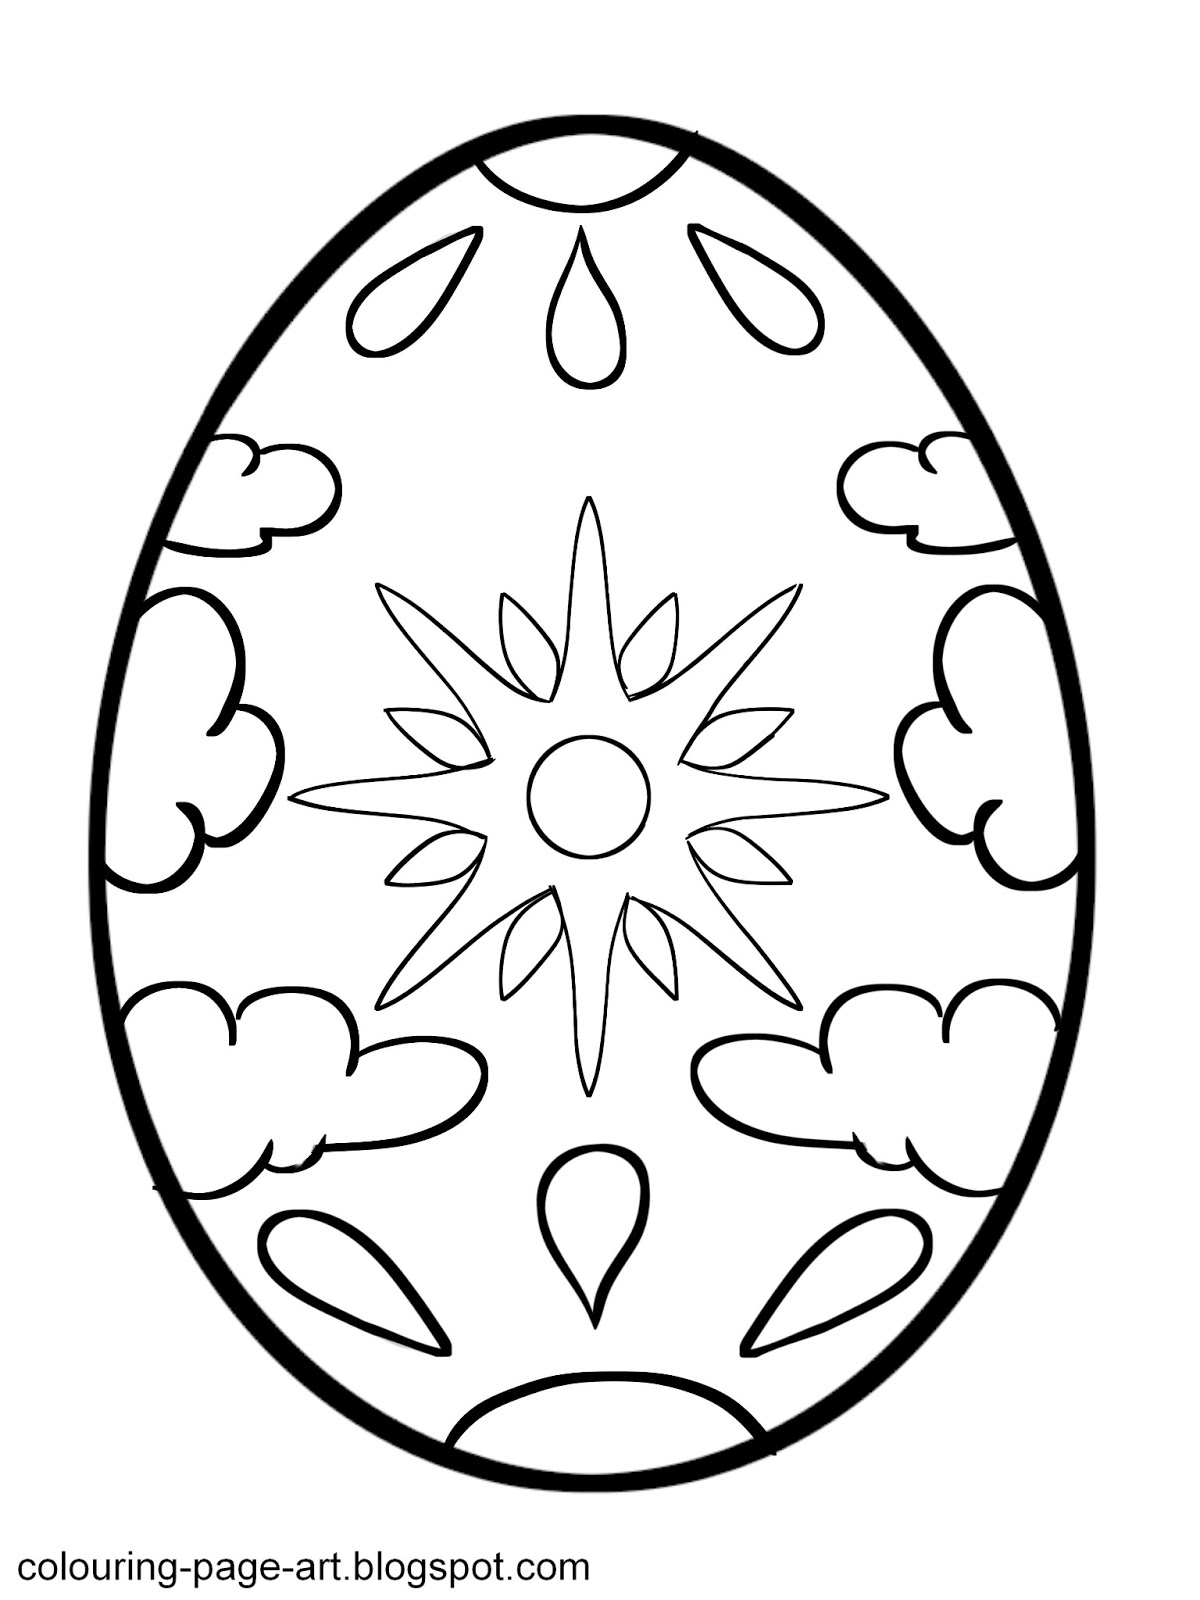 Easter Egg Printable Colouring Pages | hubpages